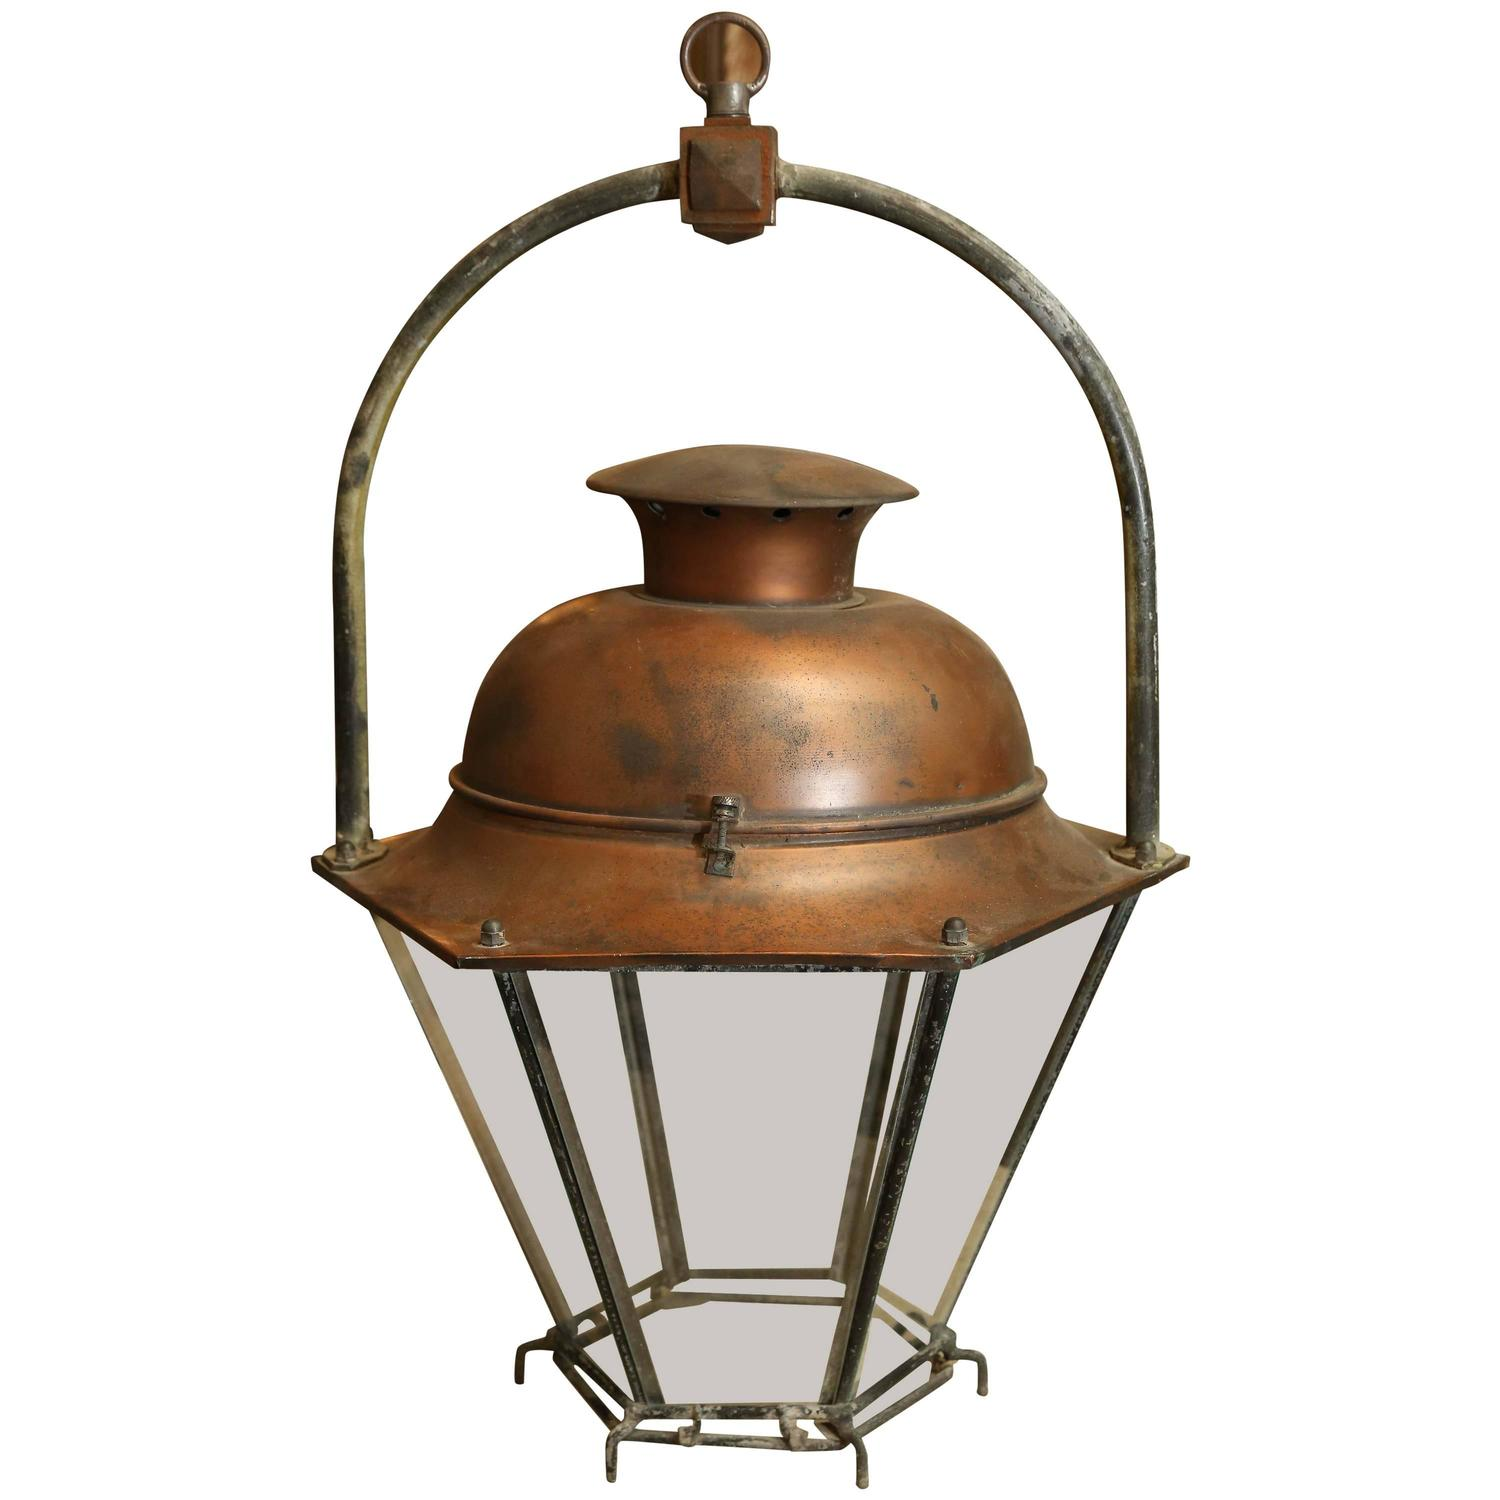 Large Copper French Lantern For Sale at 1stdibs